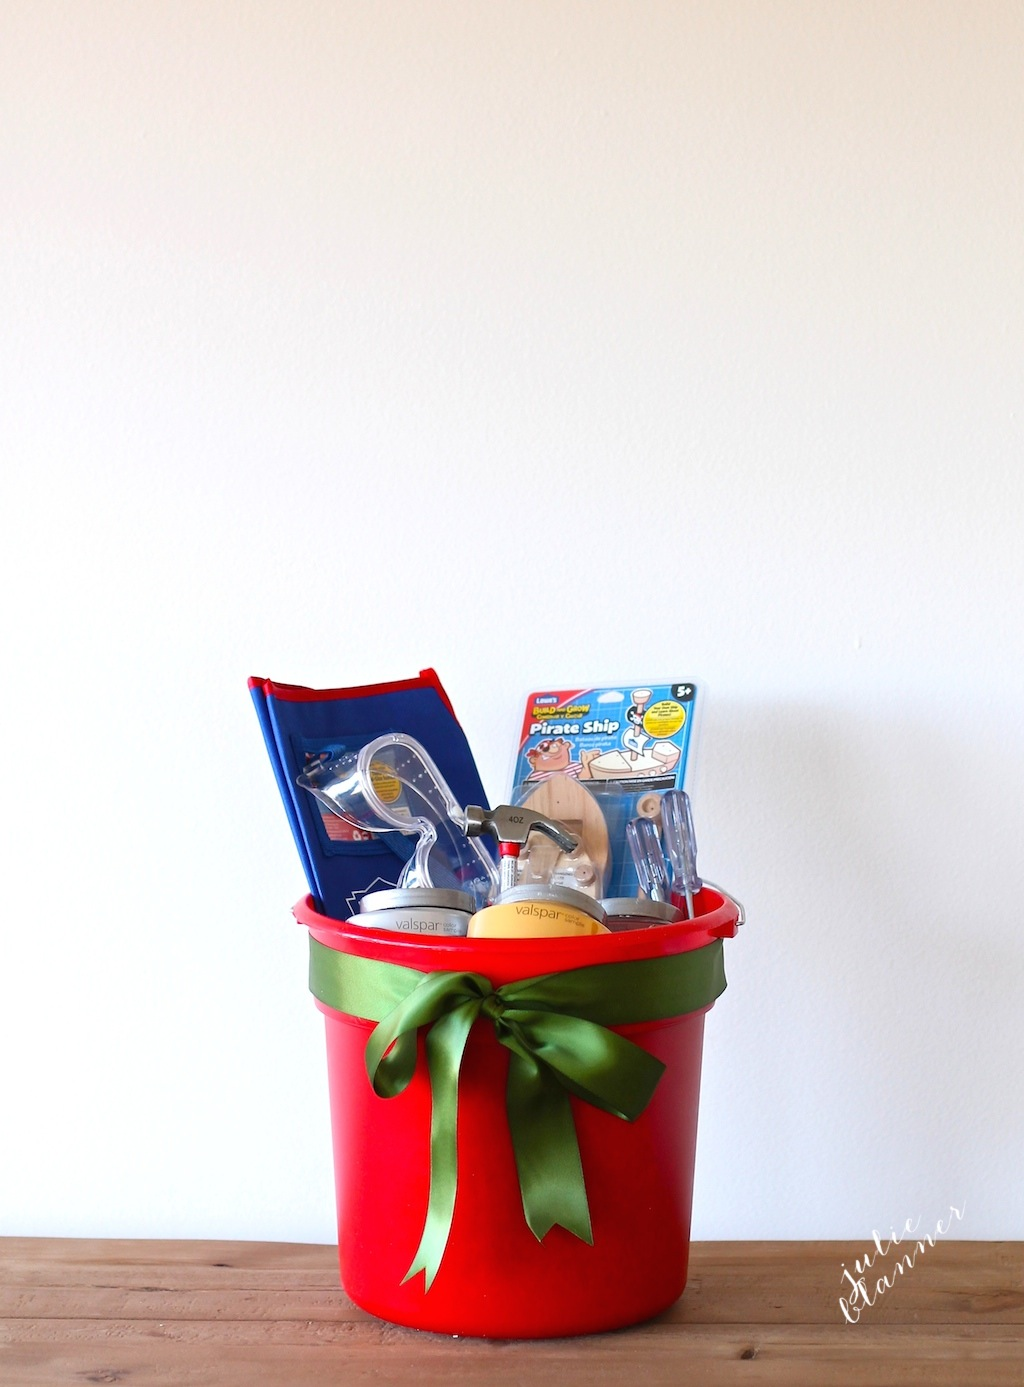 Excellent gift idea for kids!